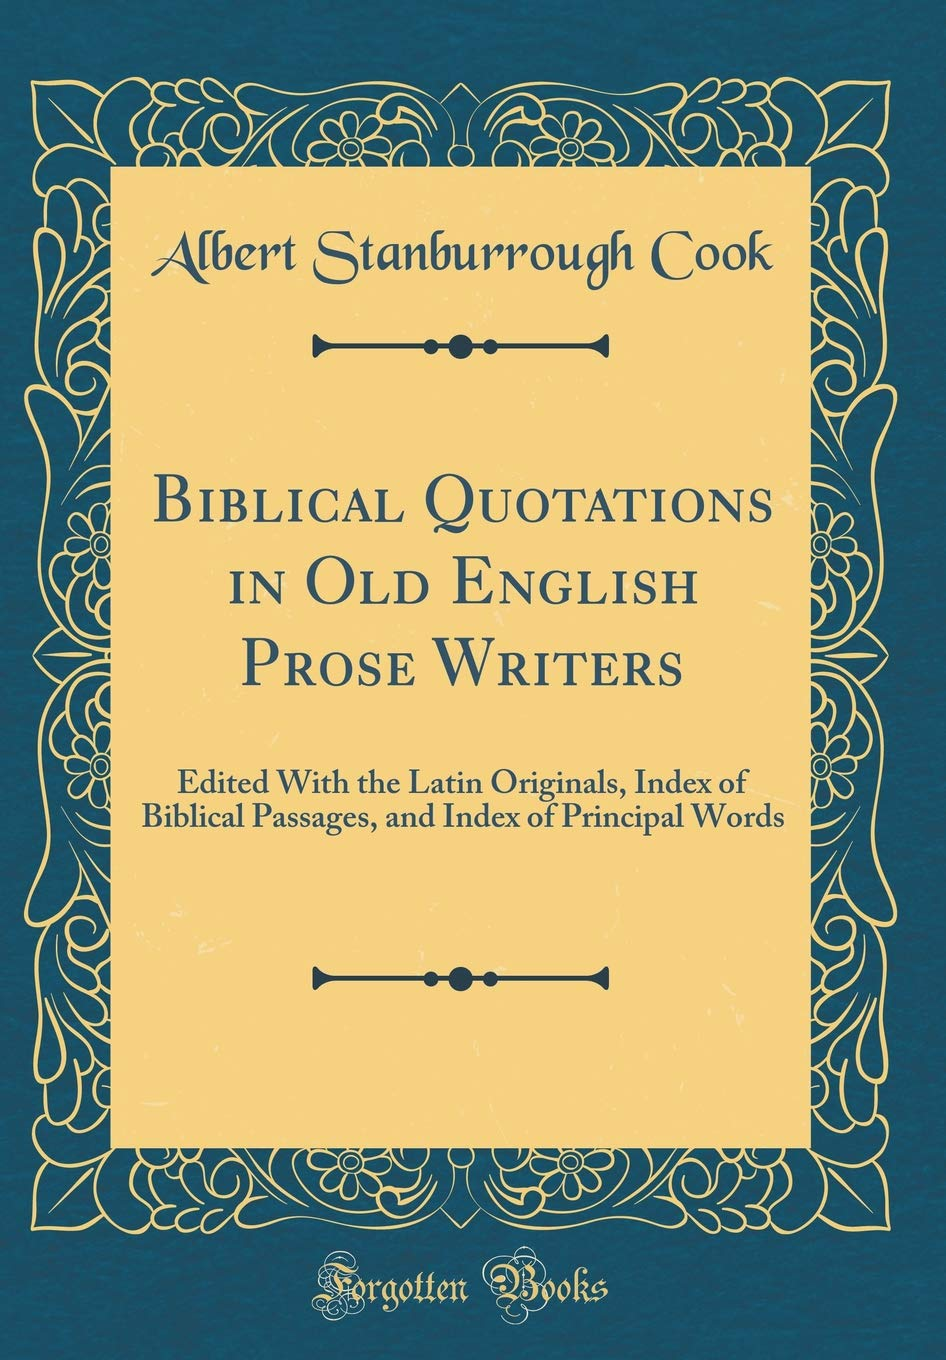 Biblical Quotations in Old English Prose Writers: Edited